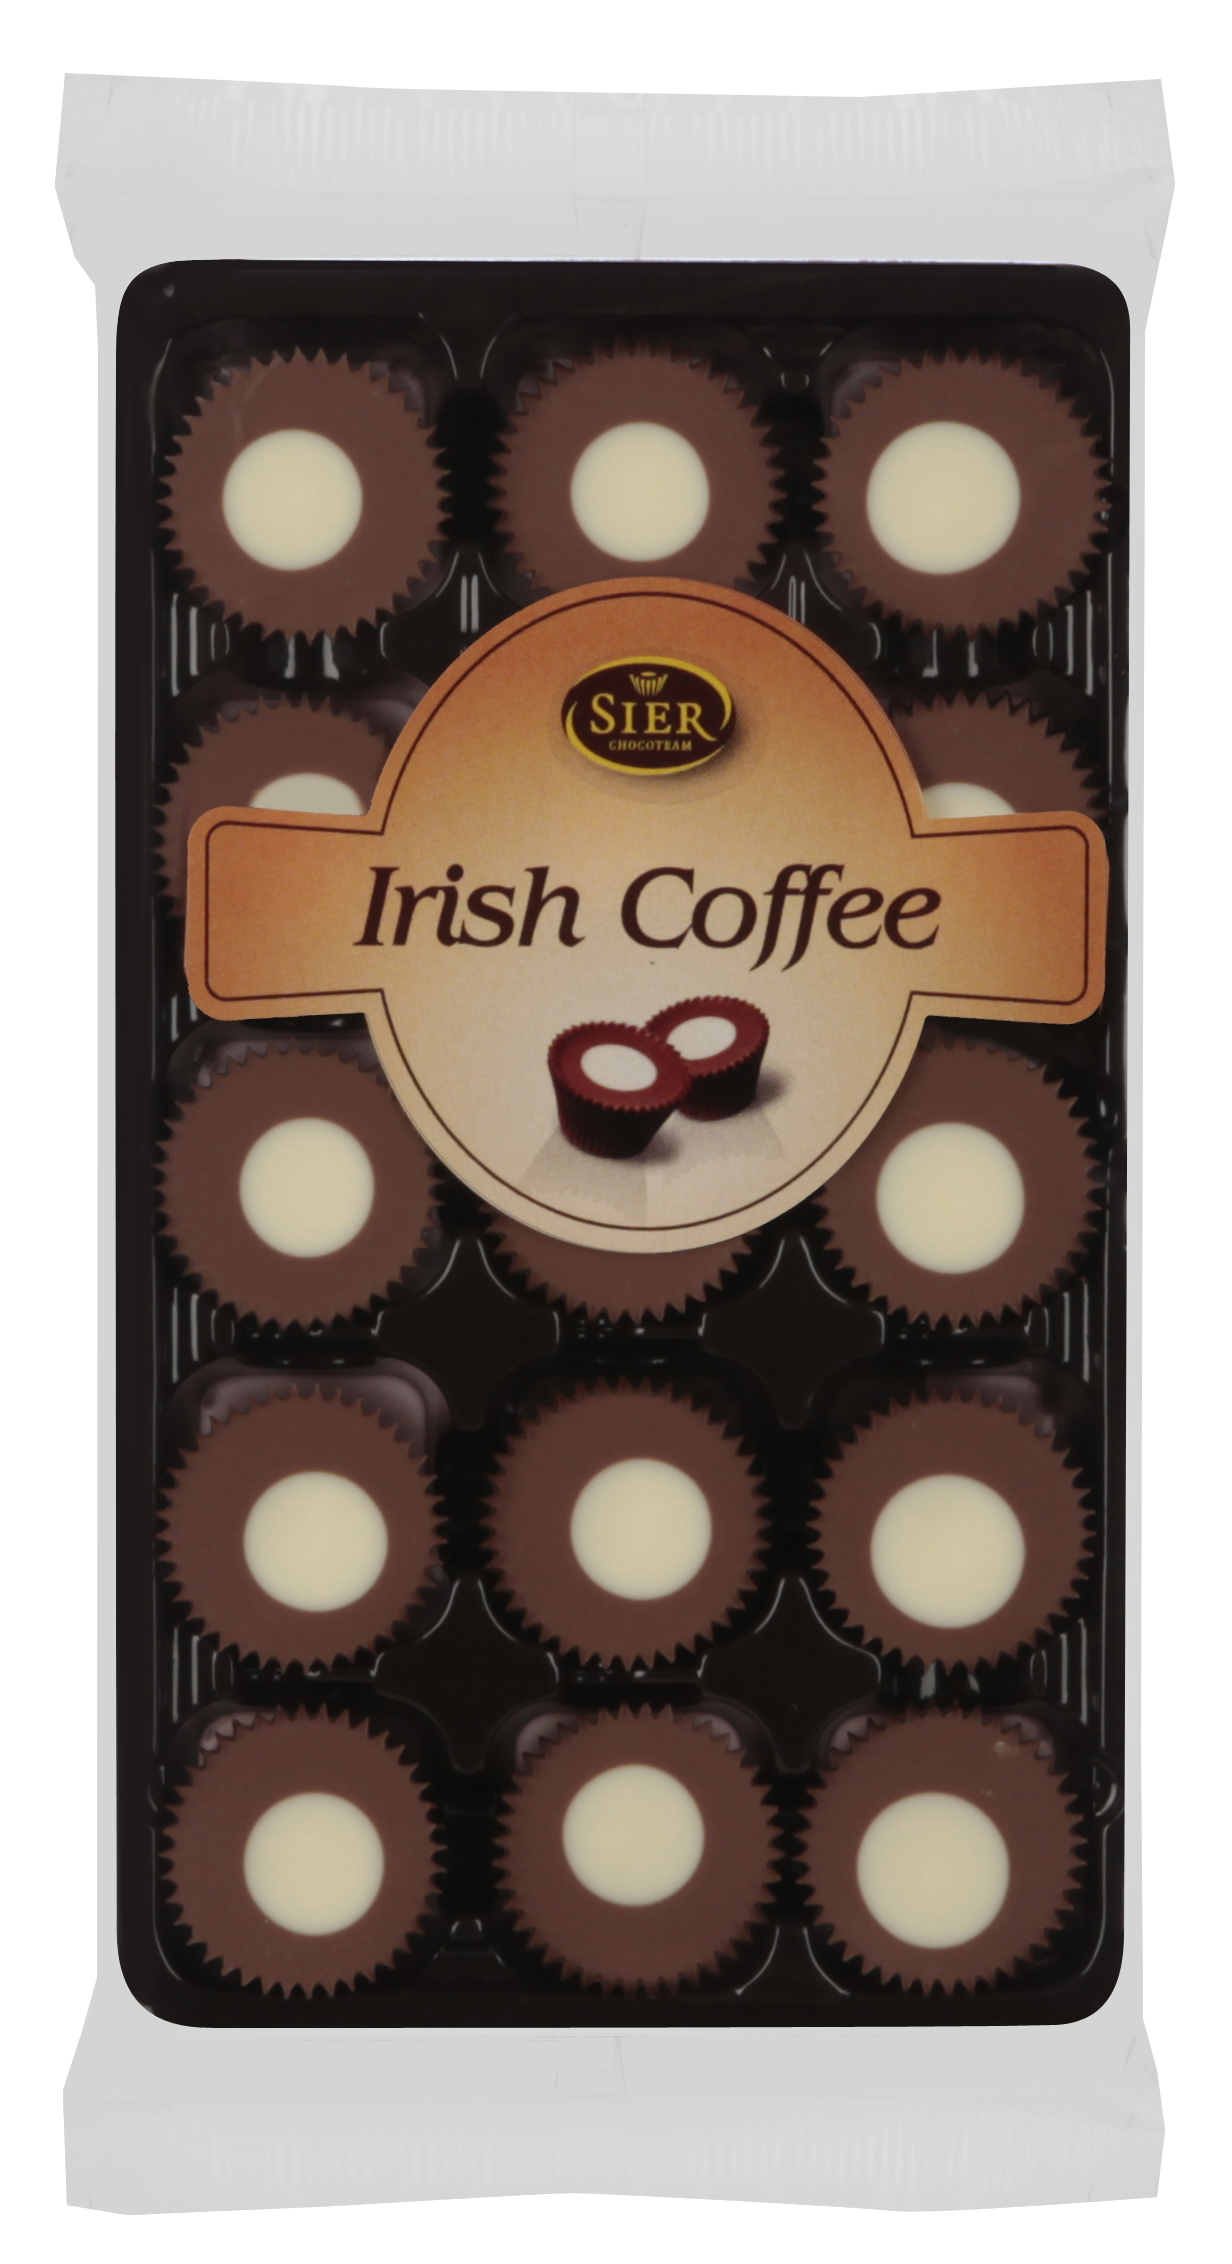 Sier Irish Coffee Cups